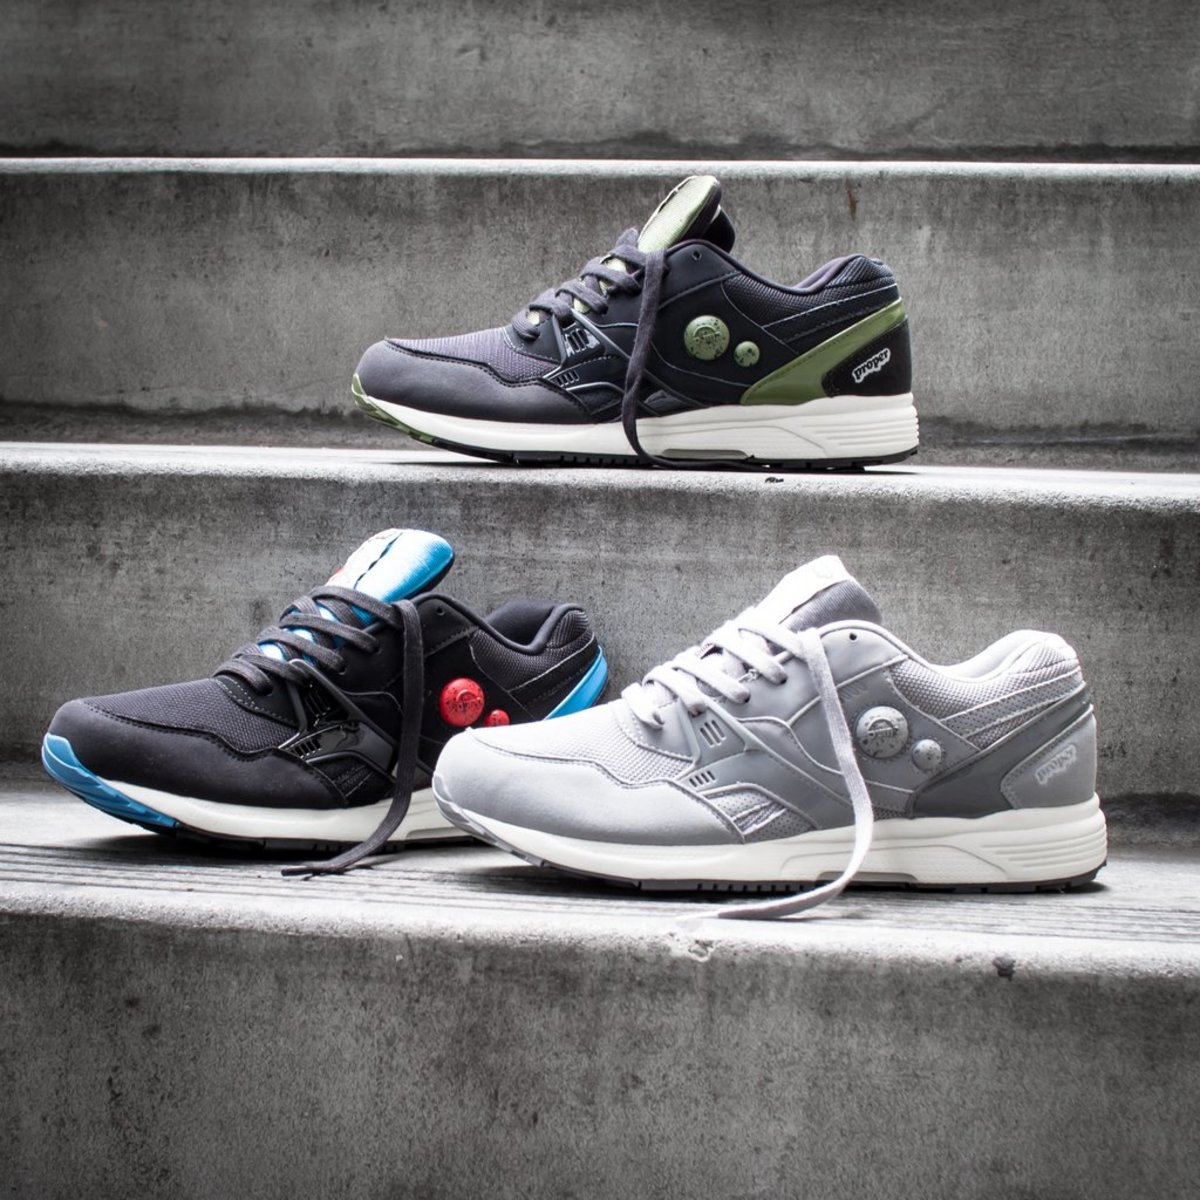 proper-reebok-dual-pum-runner-collaboration-02.jpg